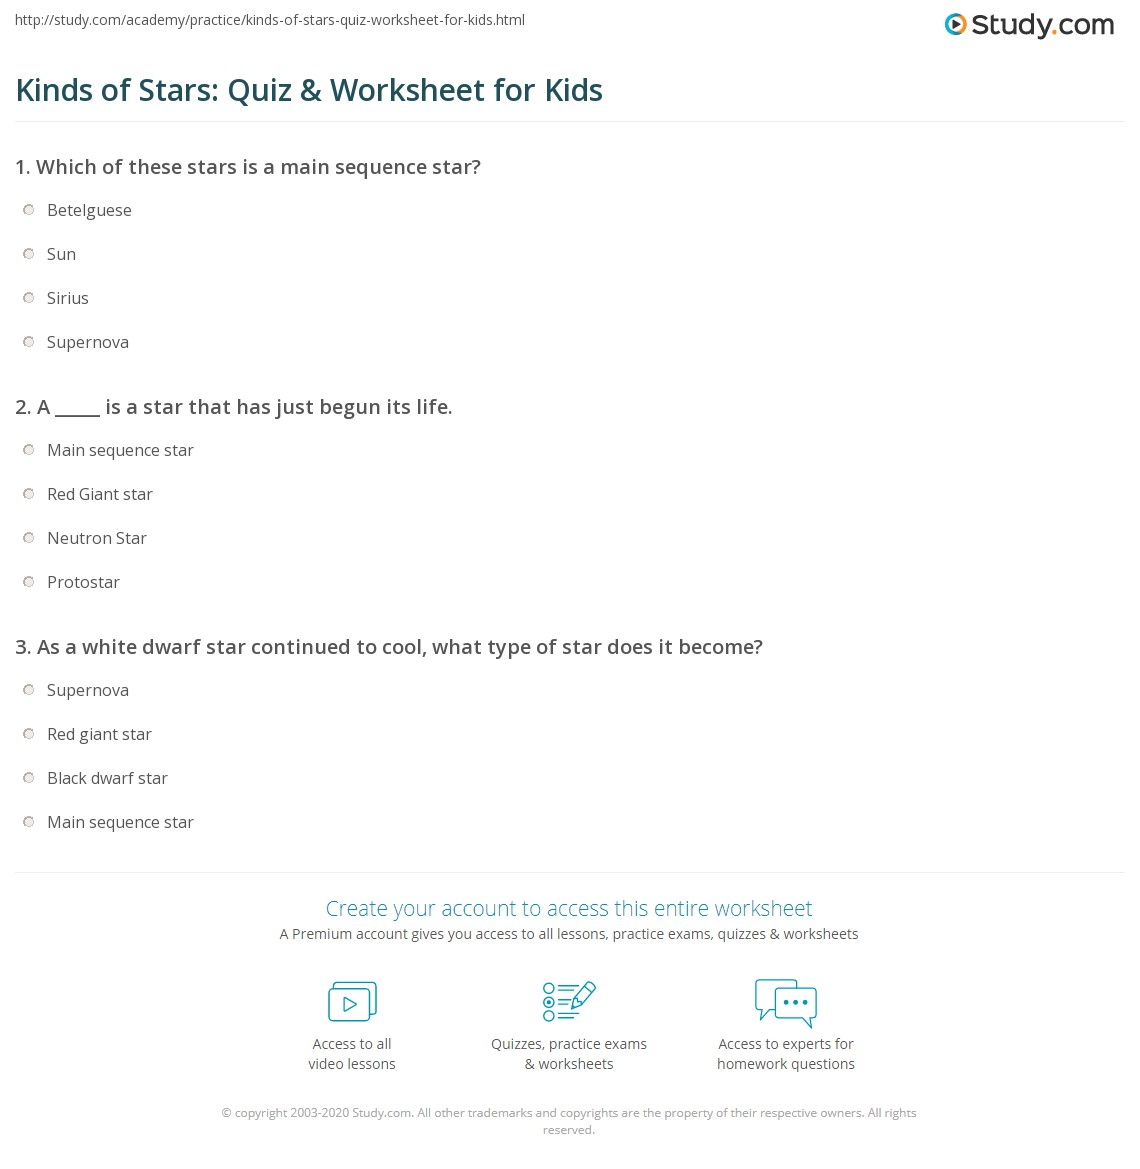 Kinds of Stars: Quiz & Worksheet for Kids | Study.com